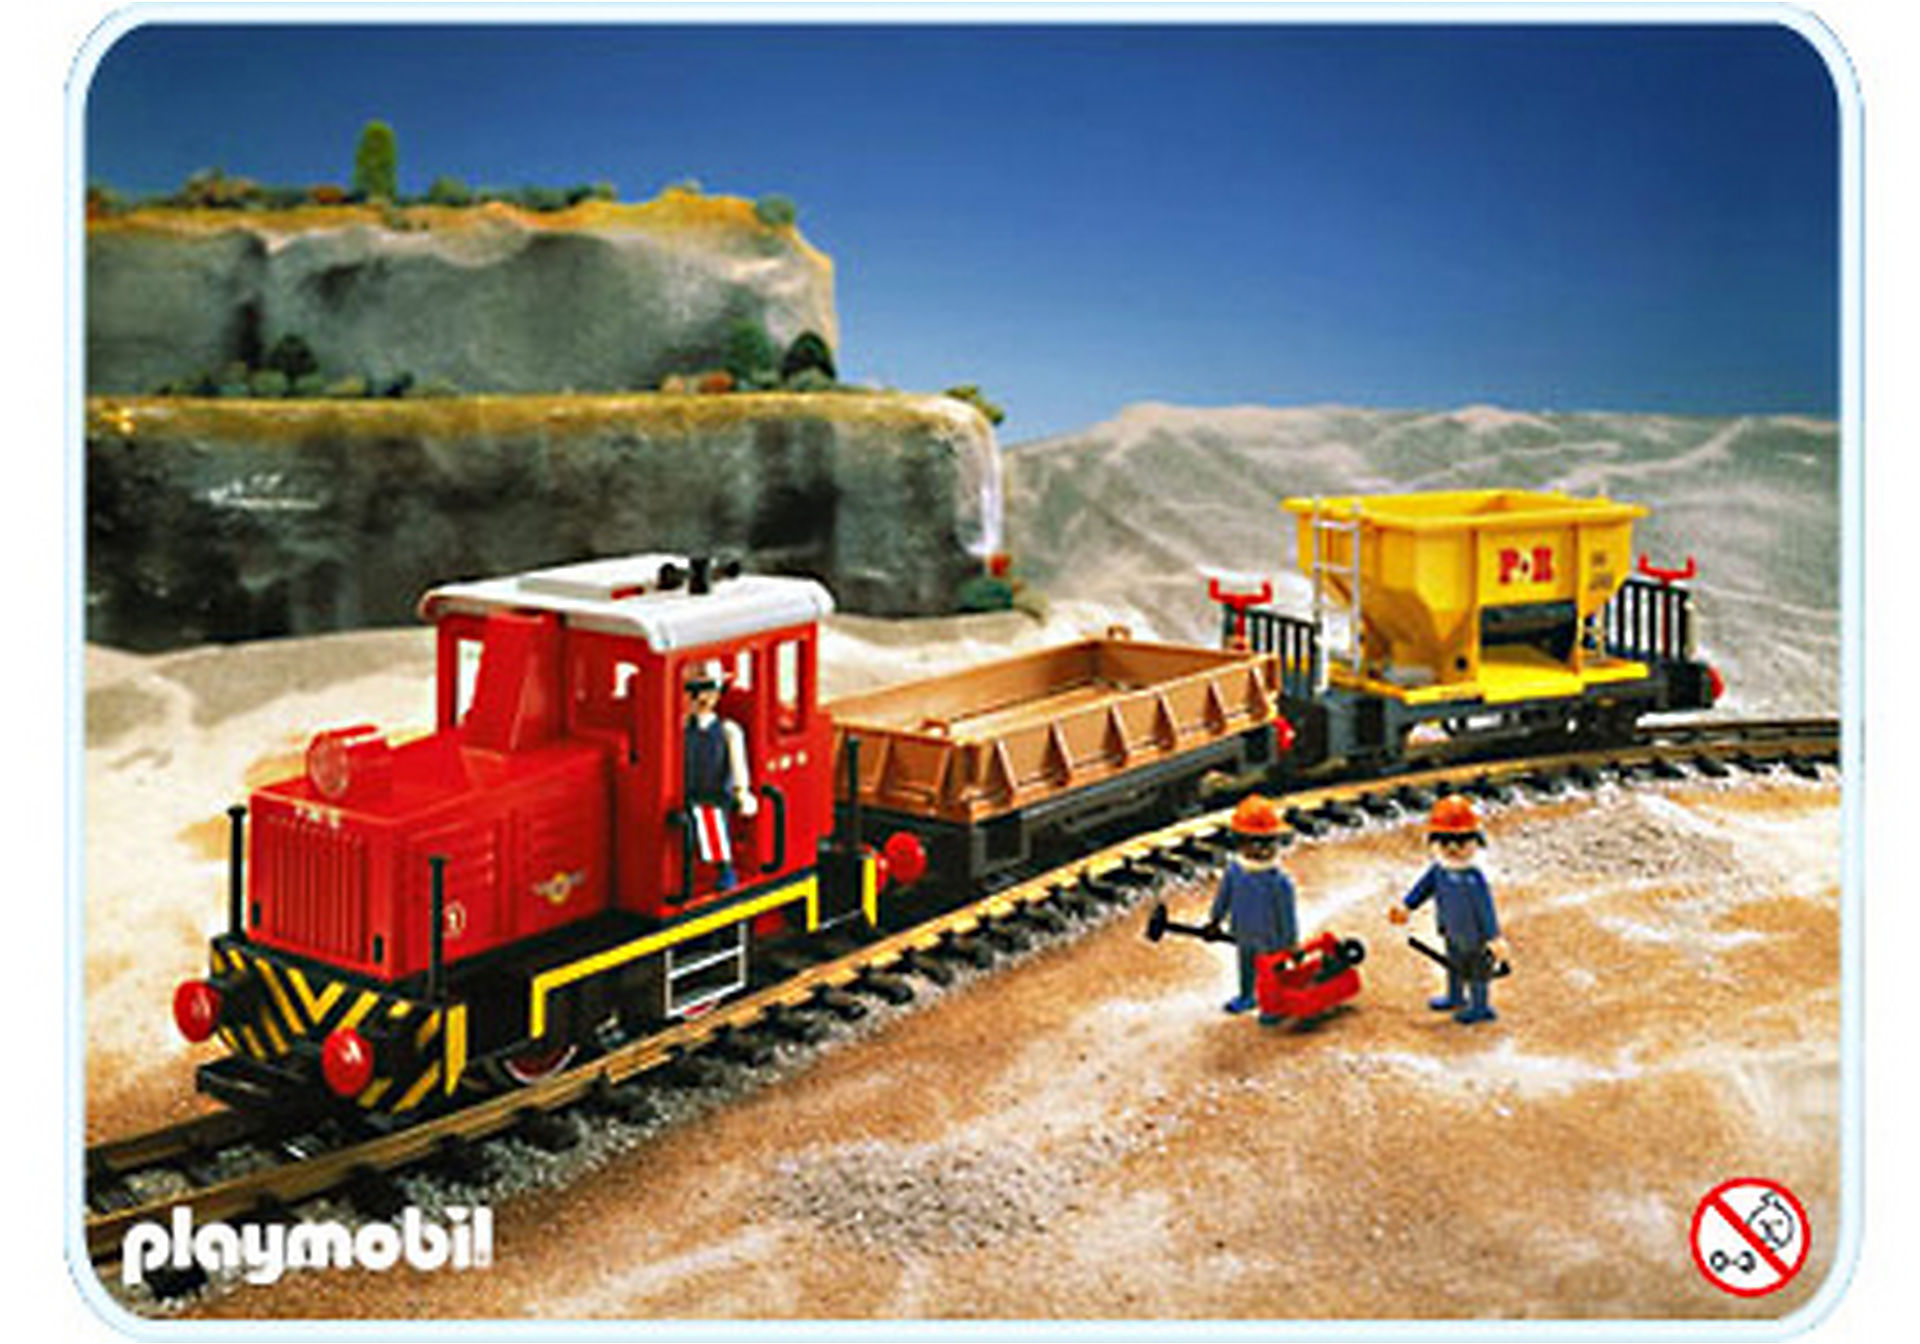 http://media.playmobil.com/i/playmobil/4027-A_product_detail/Train marchandises sans transformateur